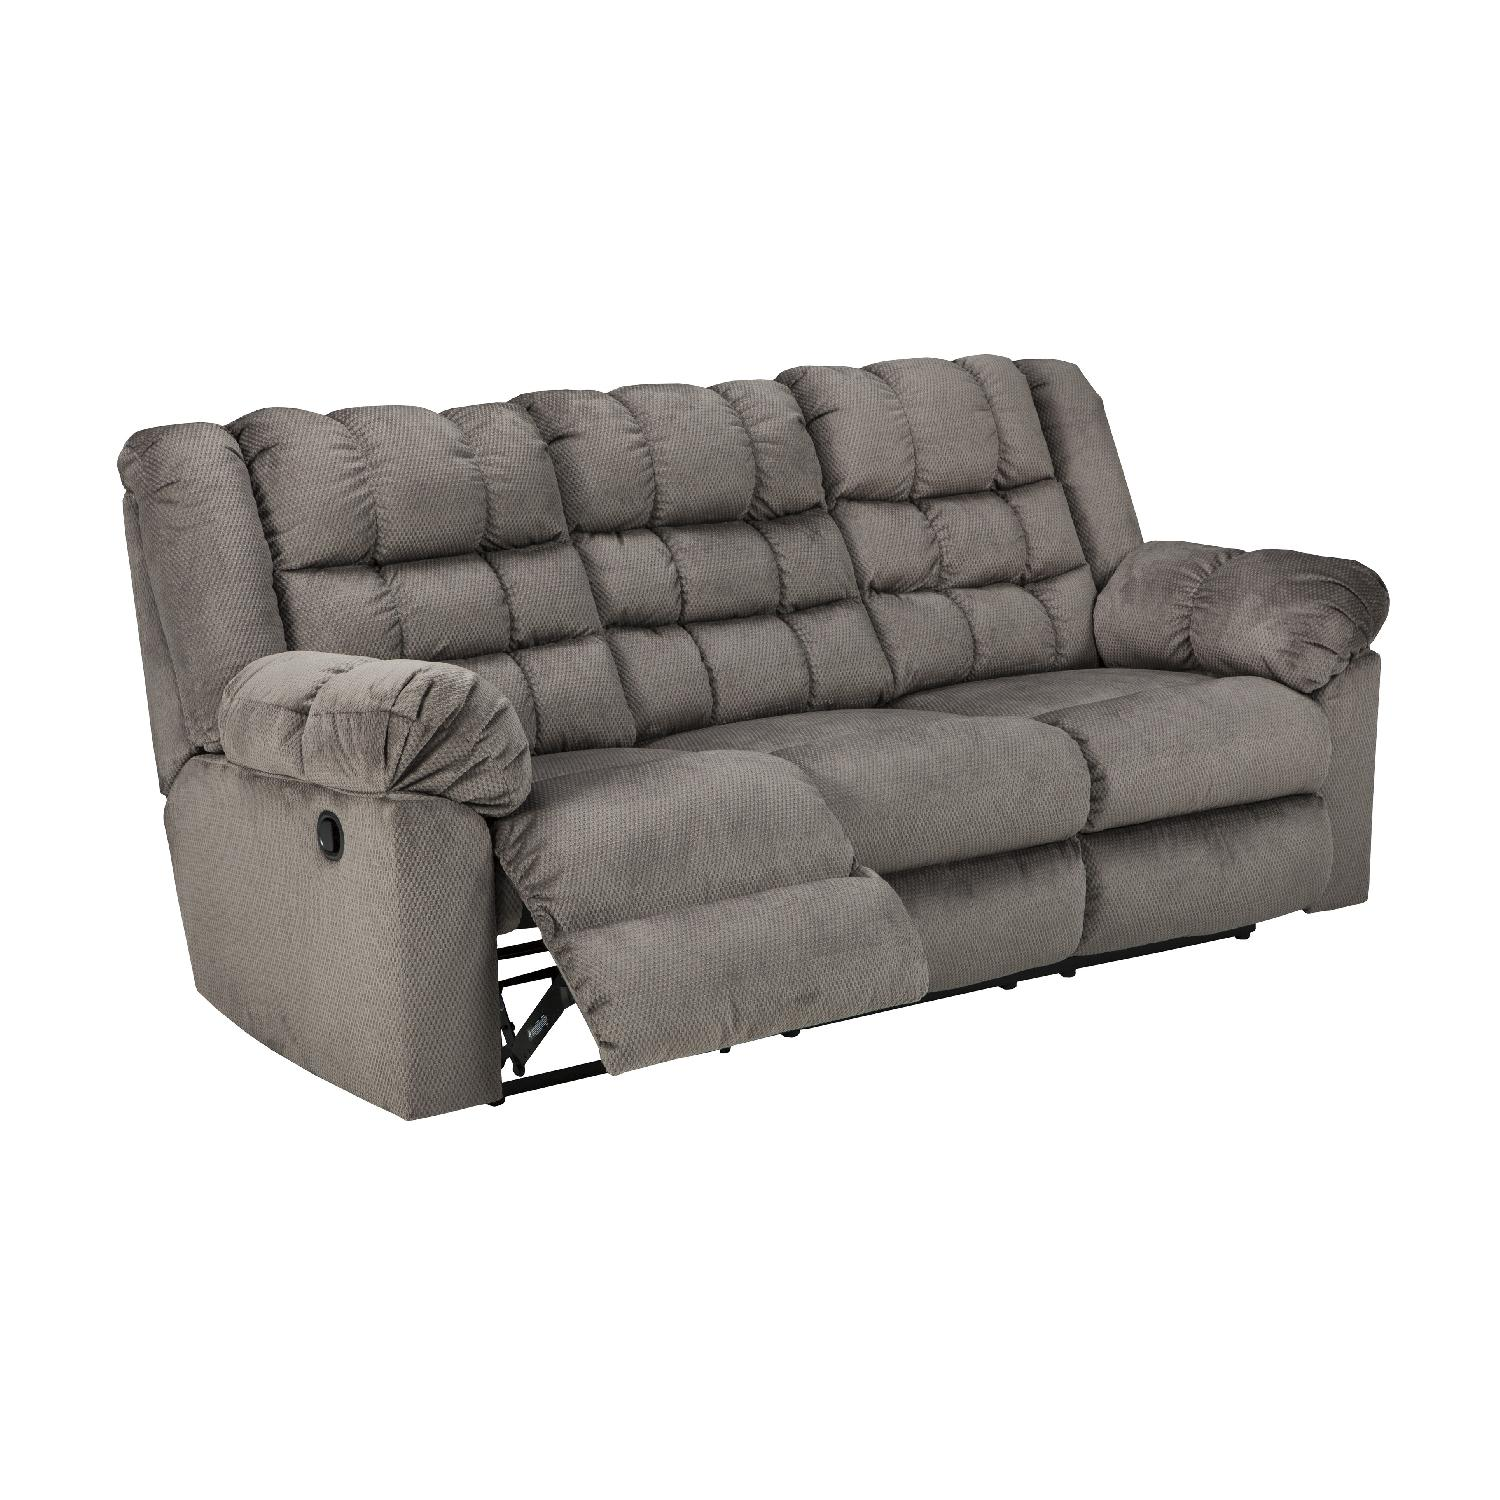 Ashley S Contemporary Reclining Sofa In Charcoal Color